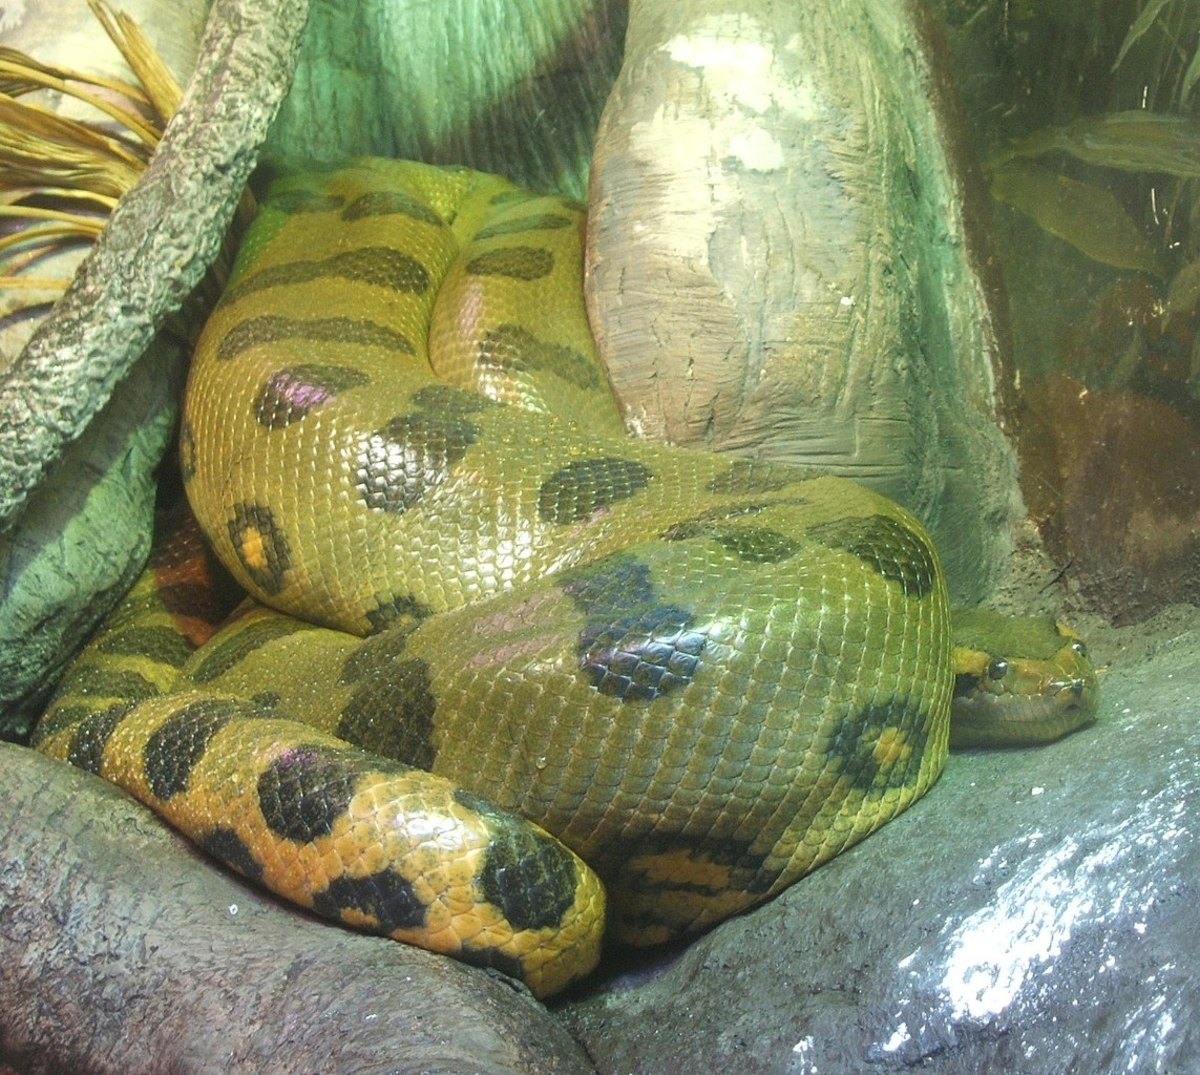 A green anaconda in an aquarium